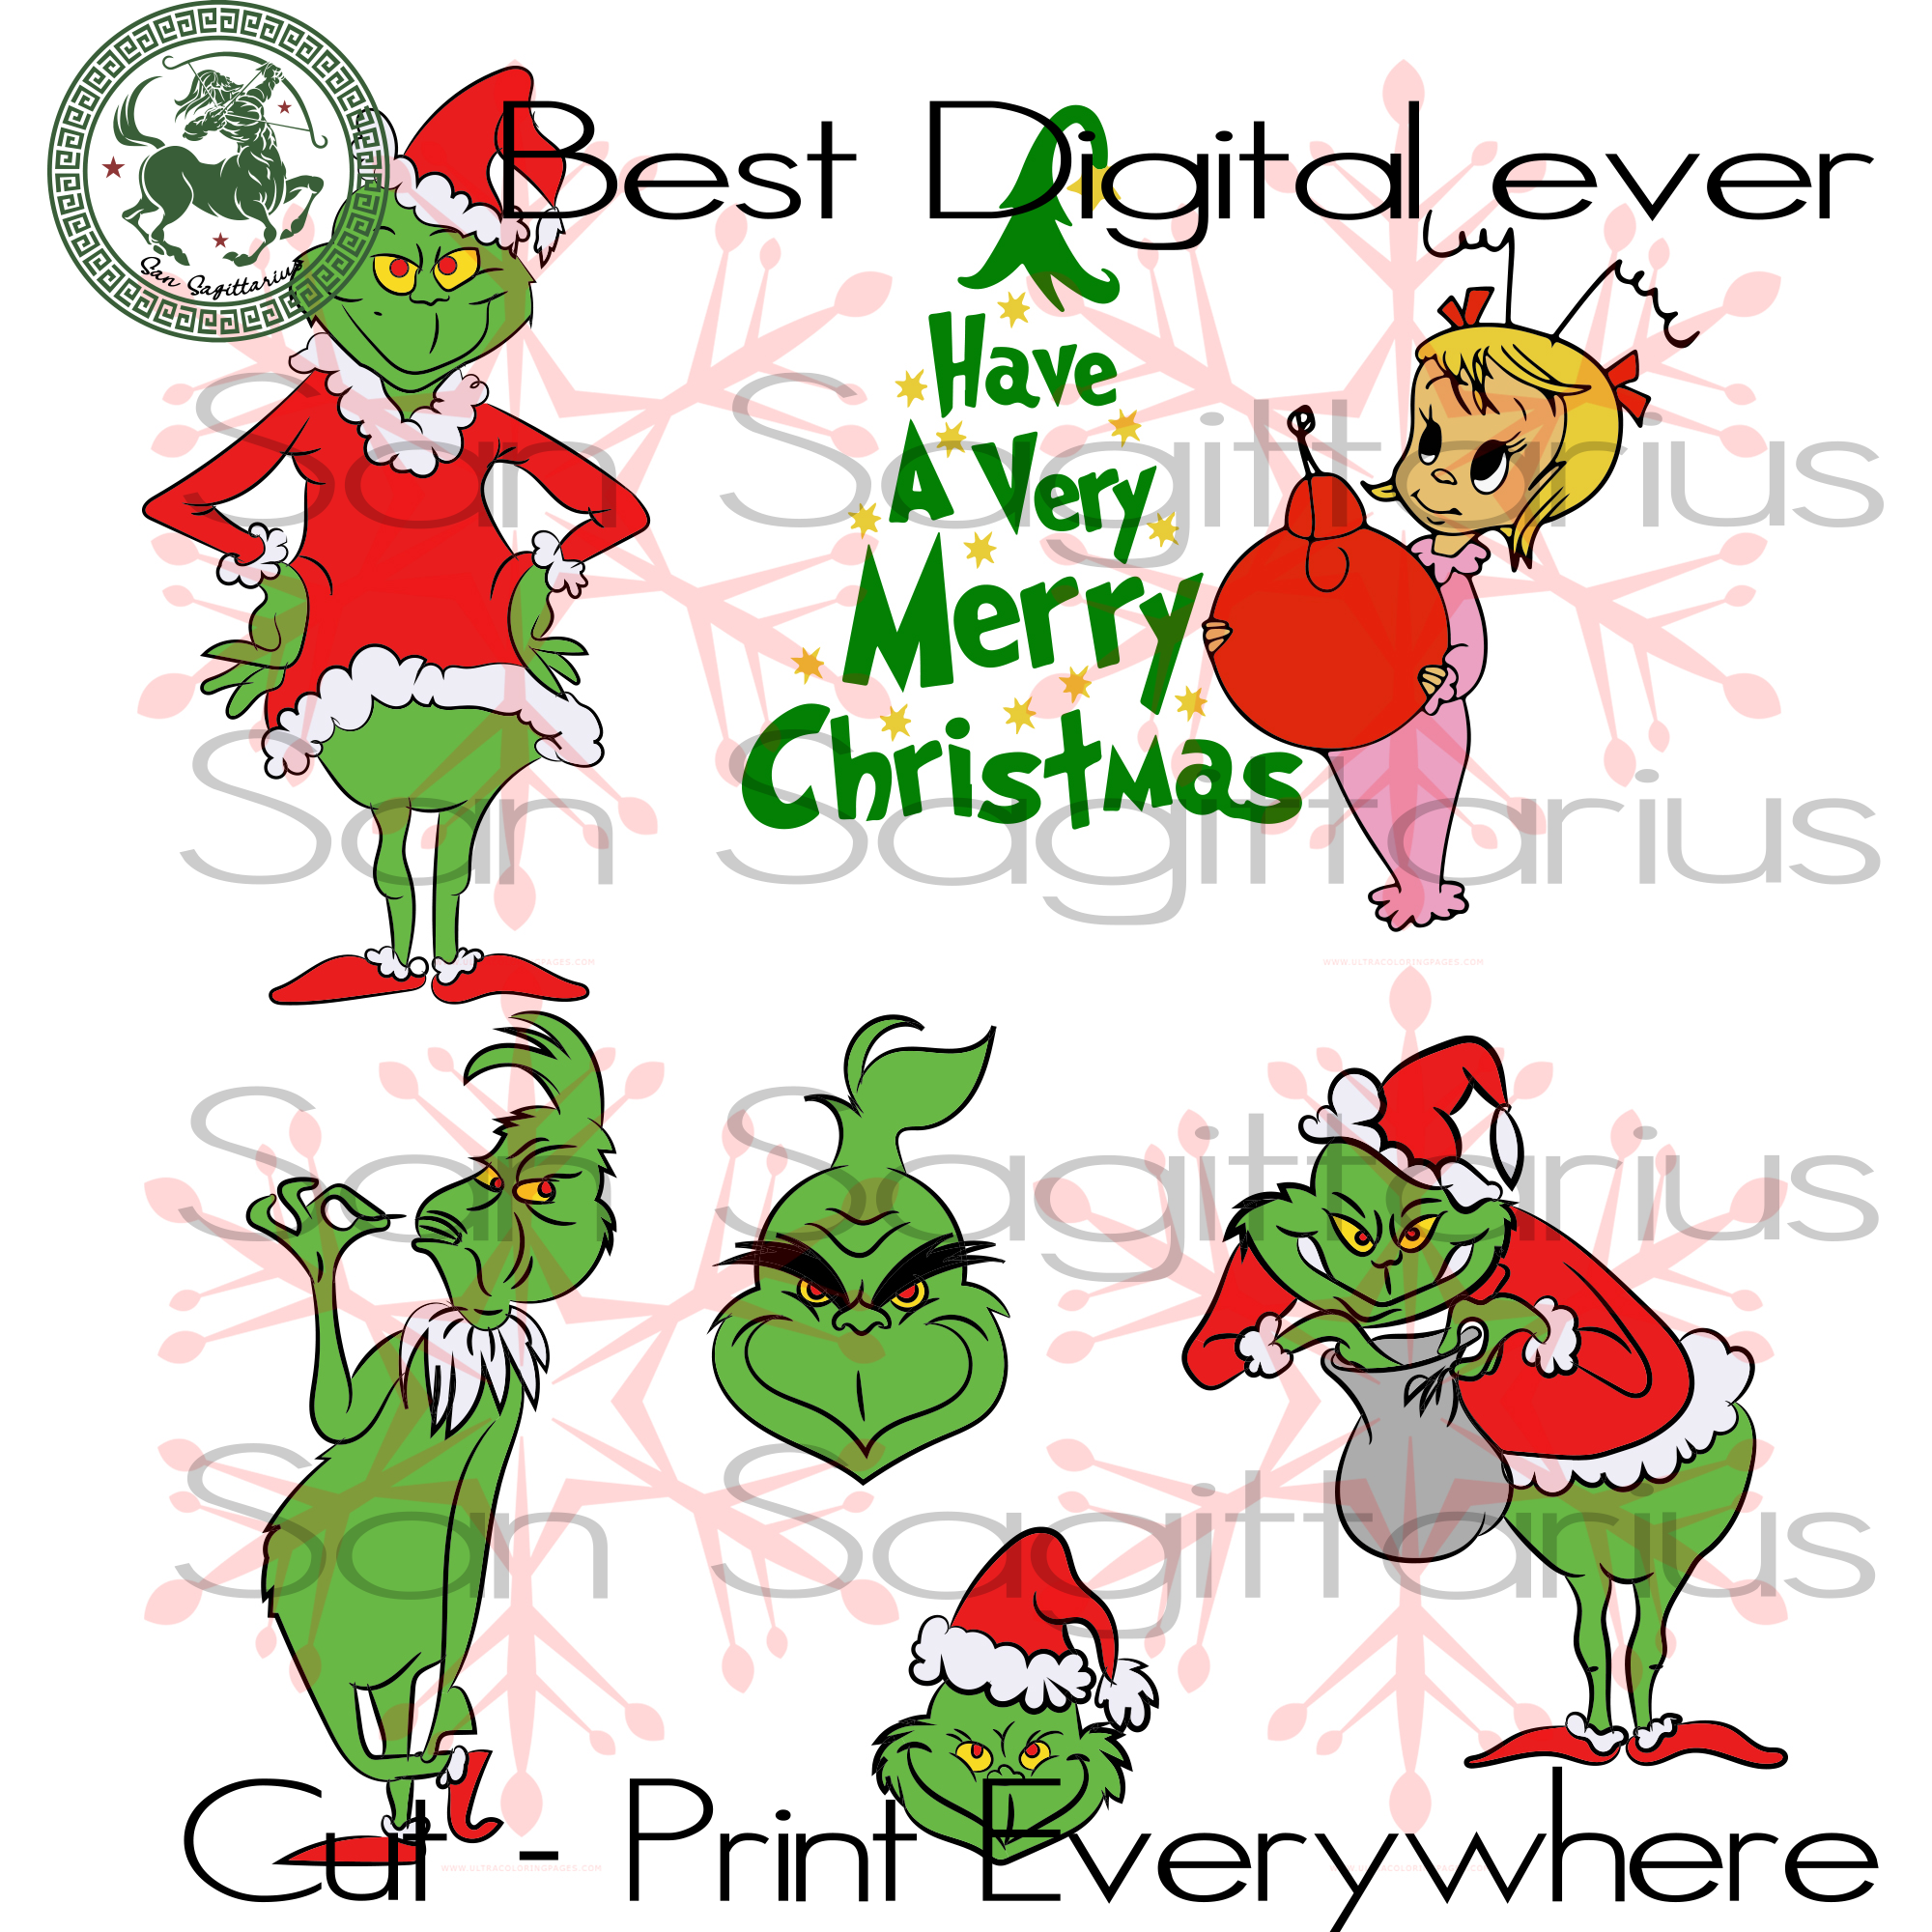 Have A Very Merry Christmas, Merry Christmas, Christmas Holiday, Christmas Party, Funny Christmas, Christmas Tree,  Christmas Svg, Disney Christmas, Merry Christmas, Xmas Gift, Christmas Gift